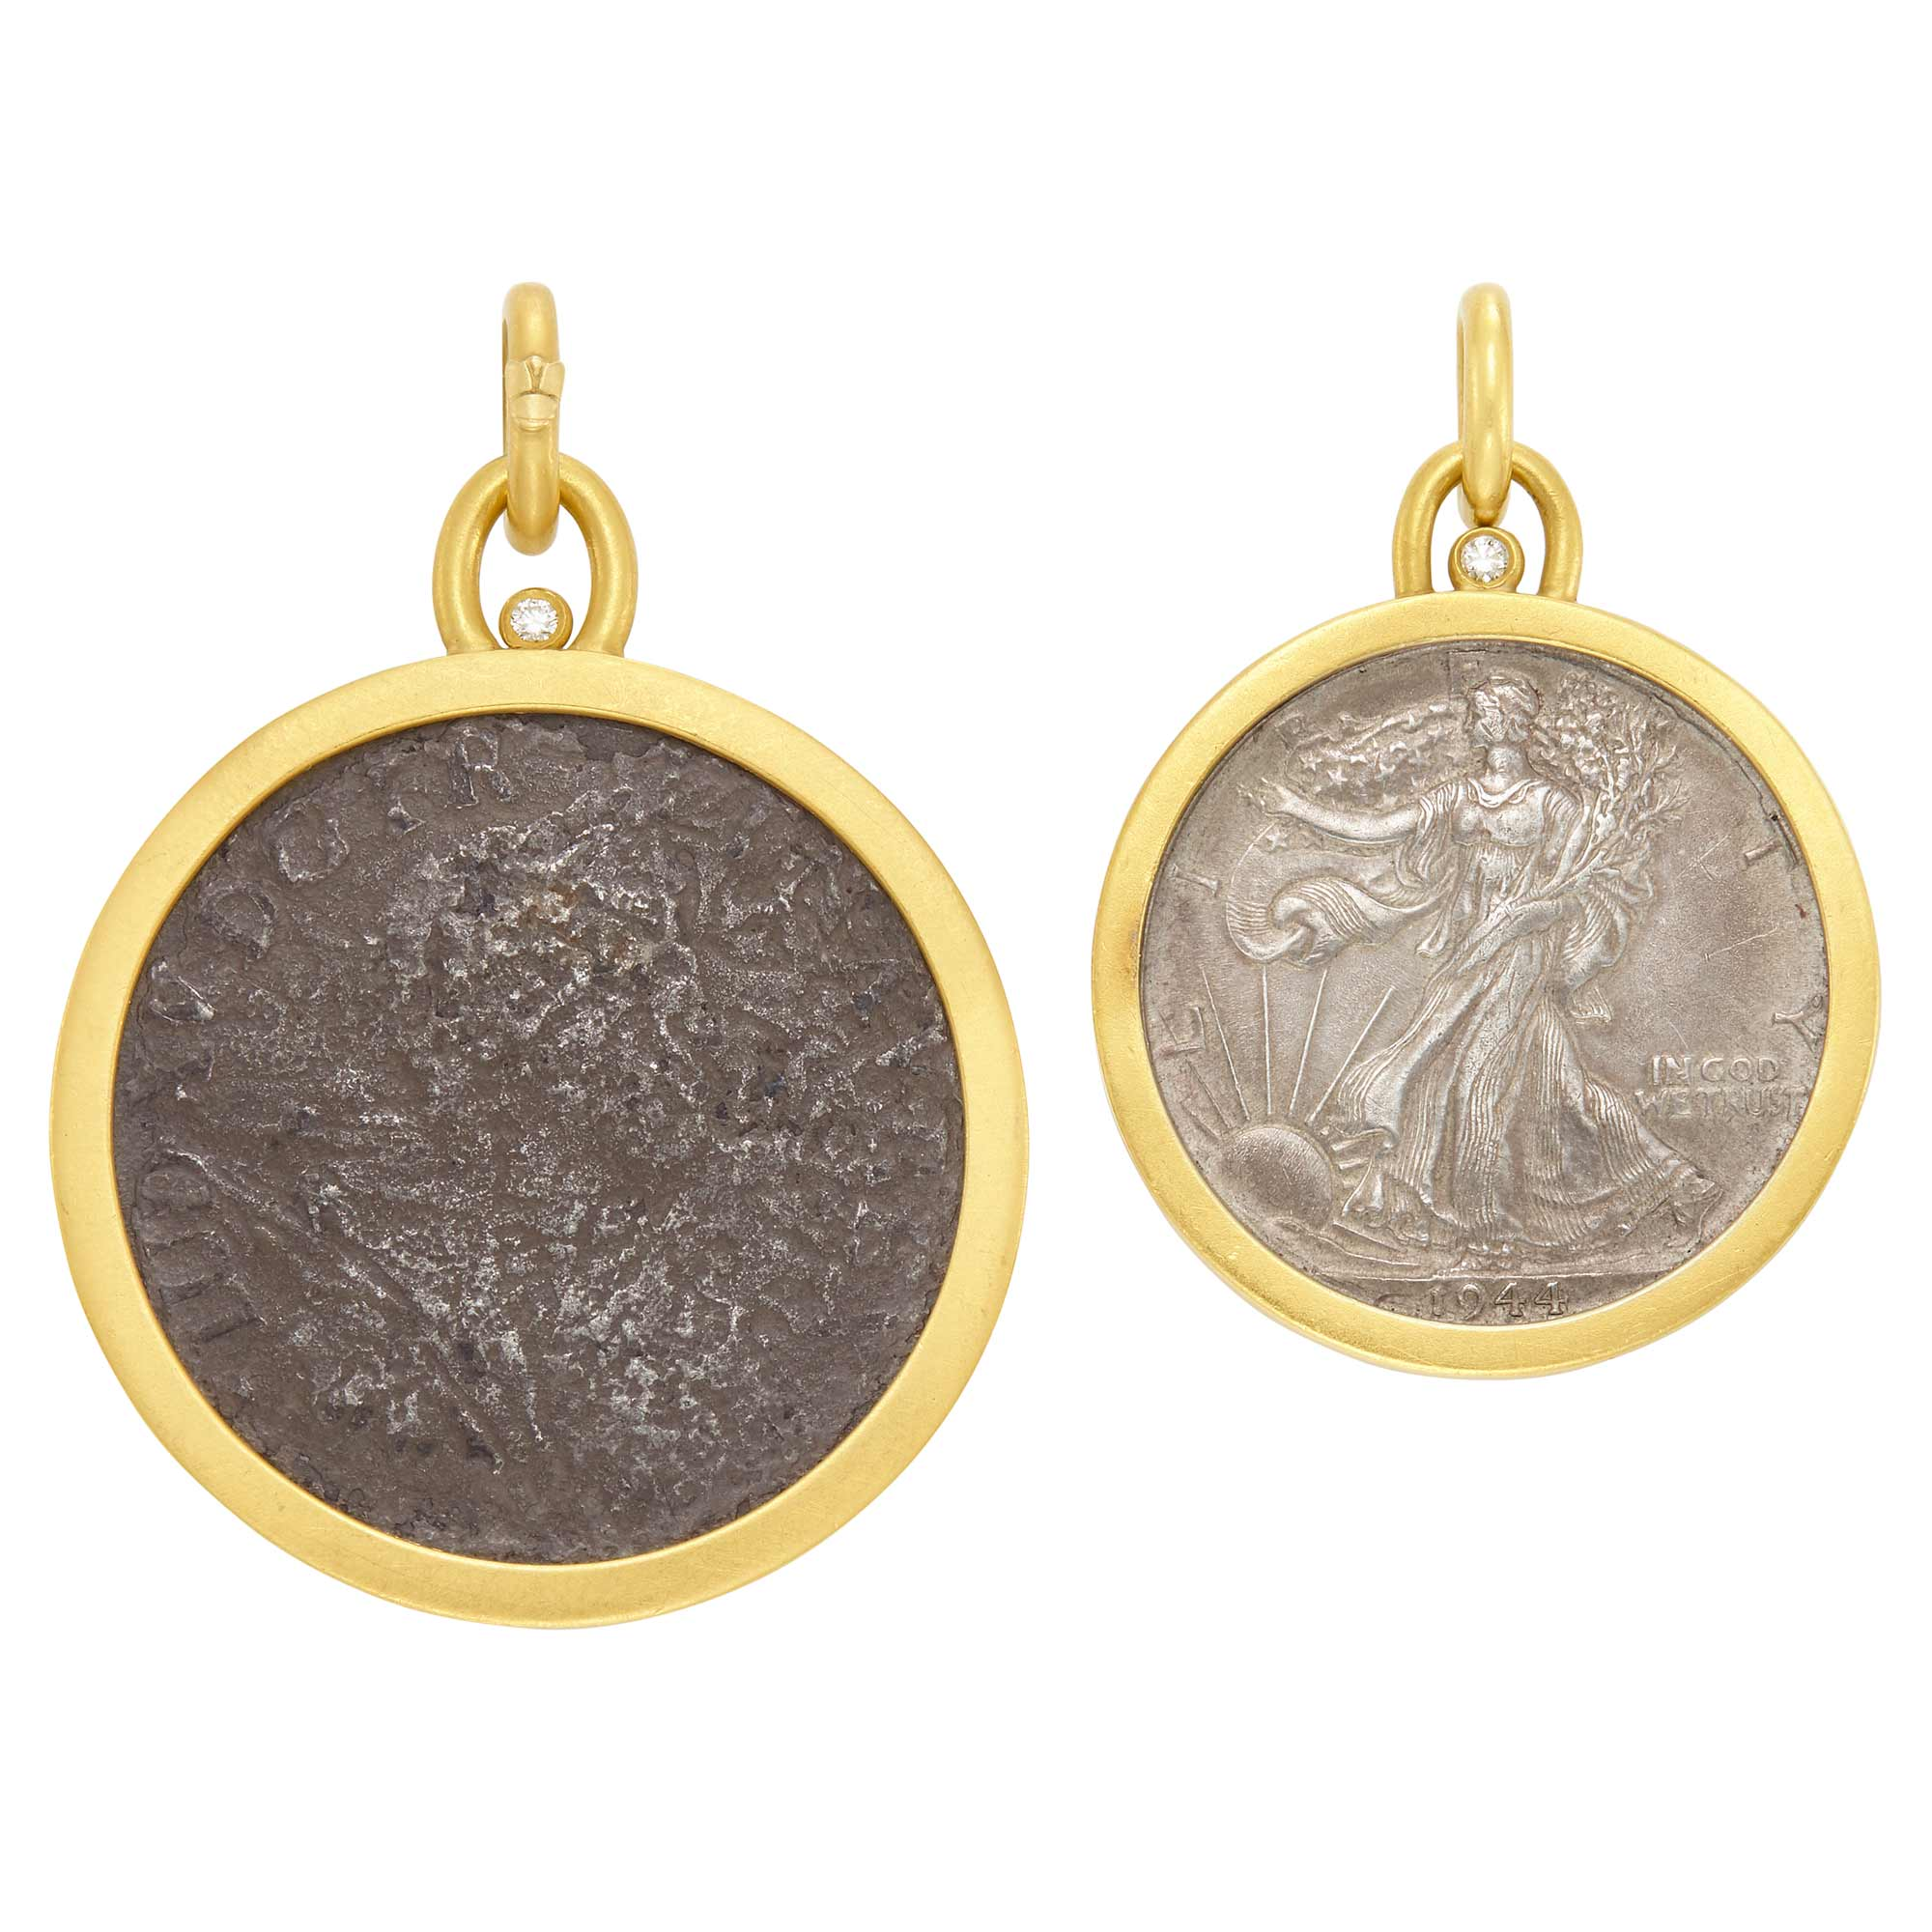 Lot image - High Karat Gold, Diamond and Ancient Coin Pendant and High Karat Gold, Diamond and United States Liberty Coin Pendant, by Linda Lee Johnson